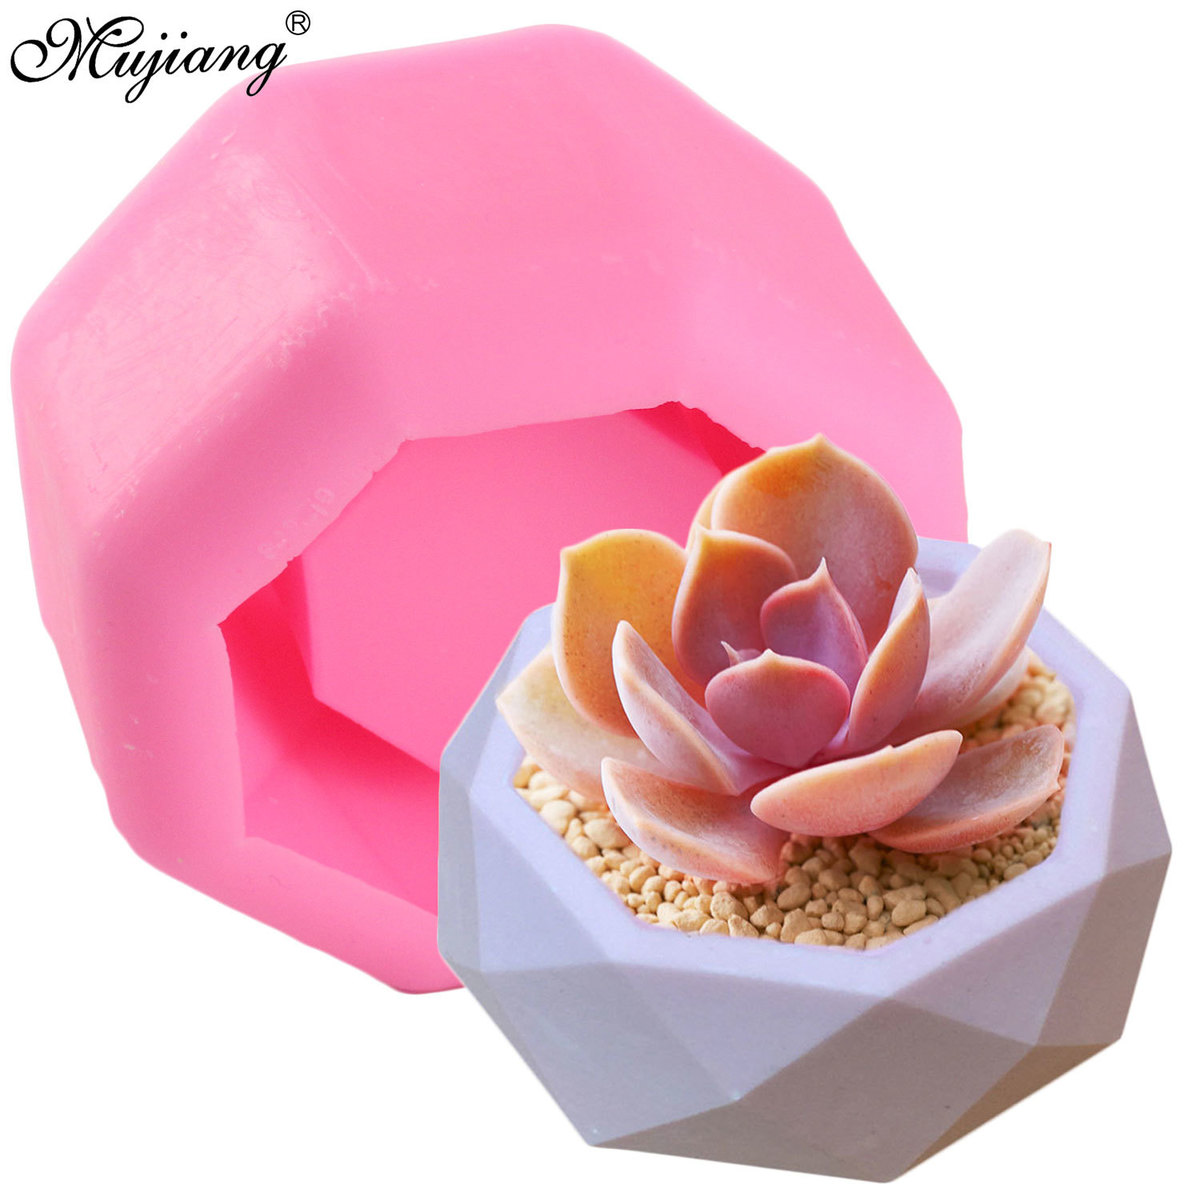 Geometry Design Pot Vase Silicone Concrete Mold Candle Holder Mould Gypsum Plaster Succulent Plants Molds Soap Resin Clay Moulds